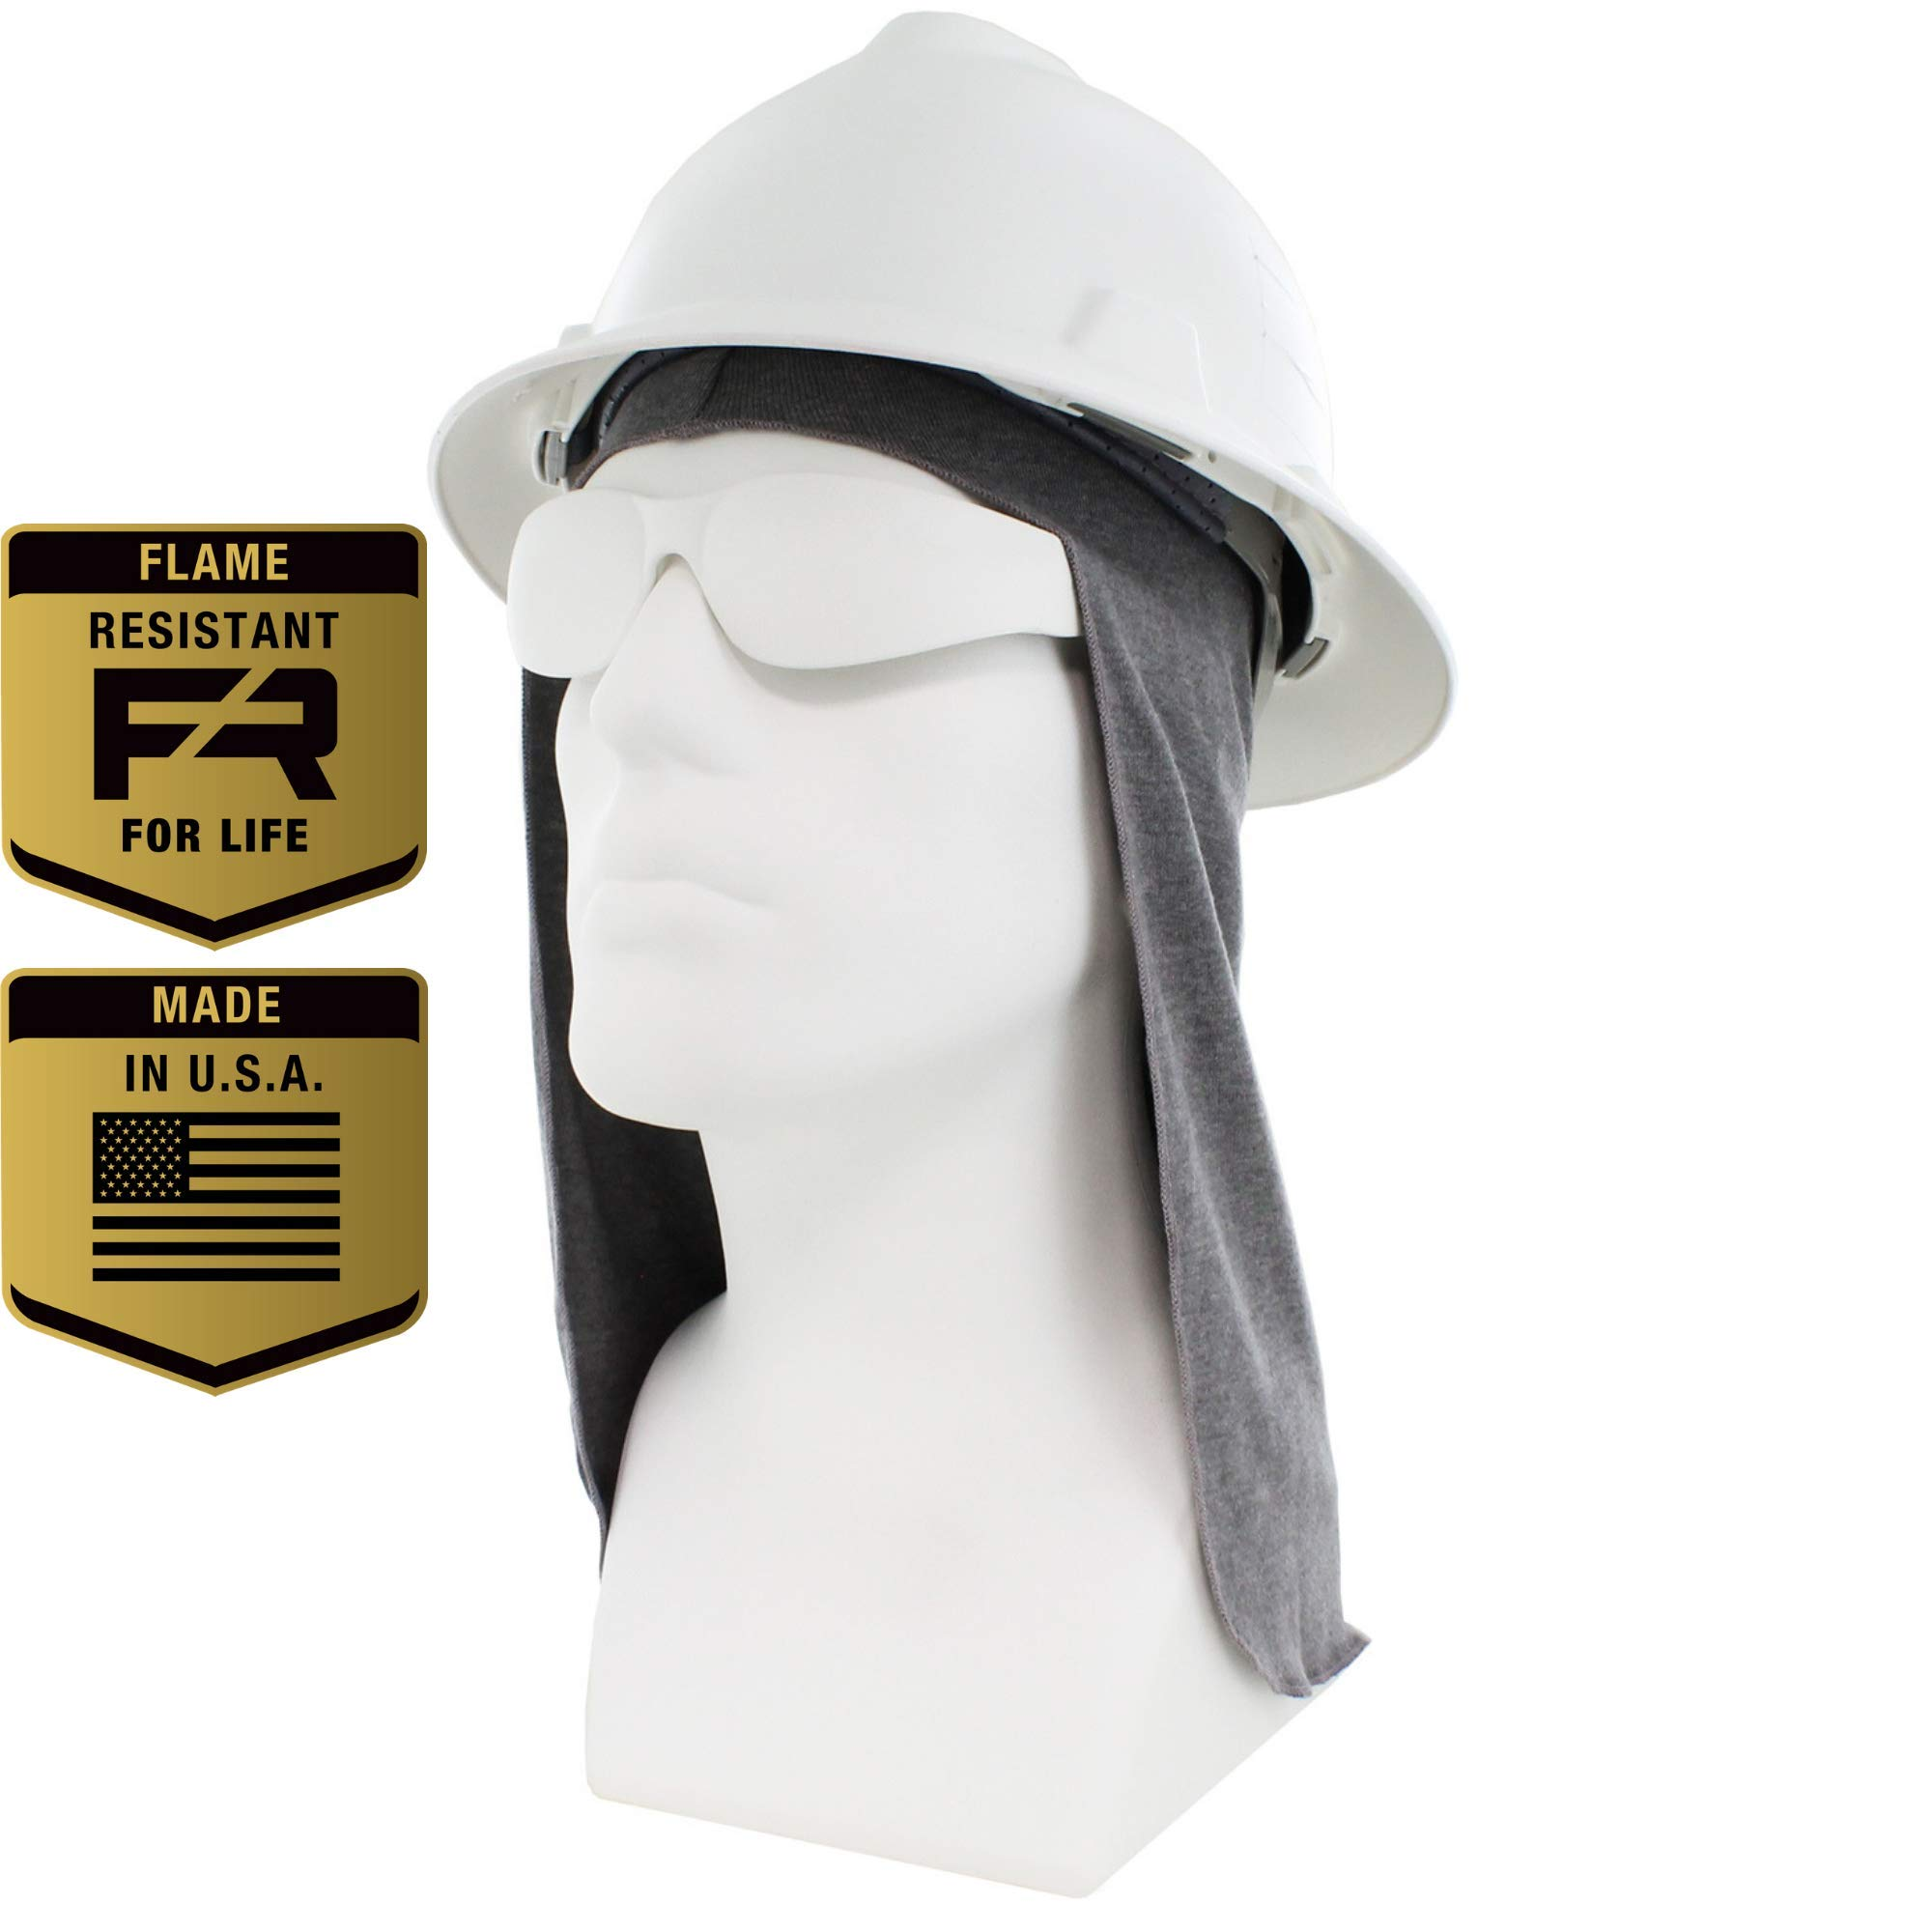 Flame Resistant FR Hard Hat Liner, Sun Shade, Lt. Gray, One Size Fits All Hard Hats (Light Gray)